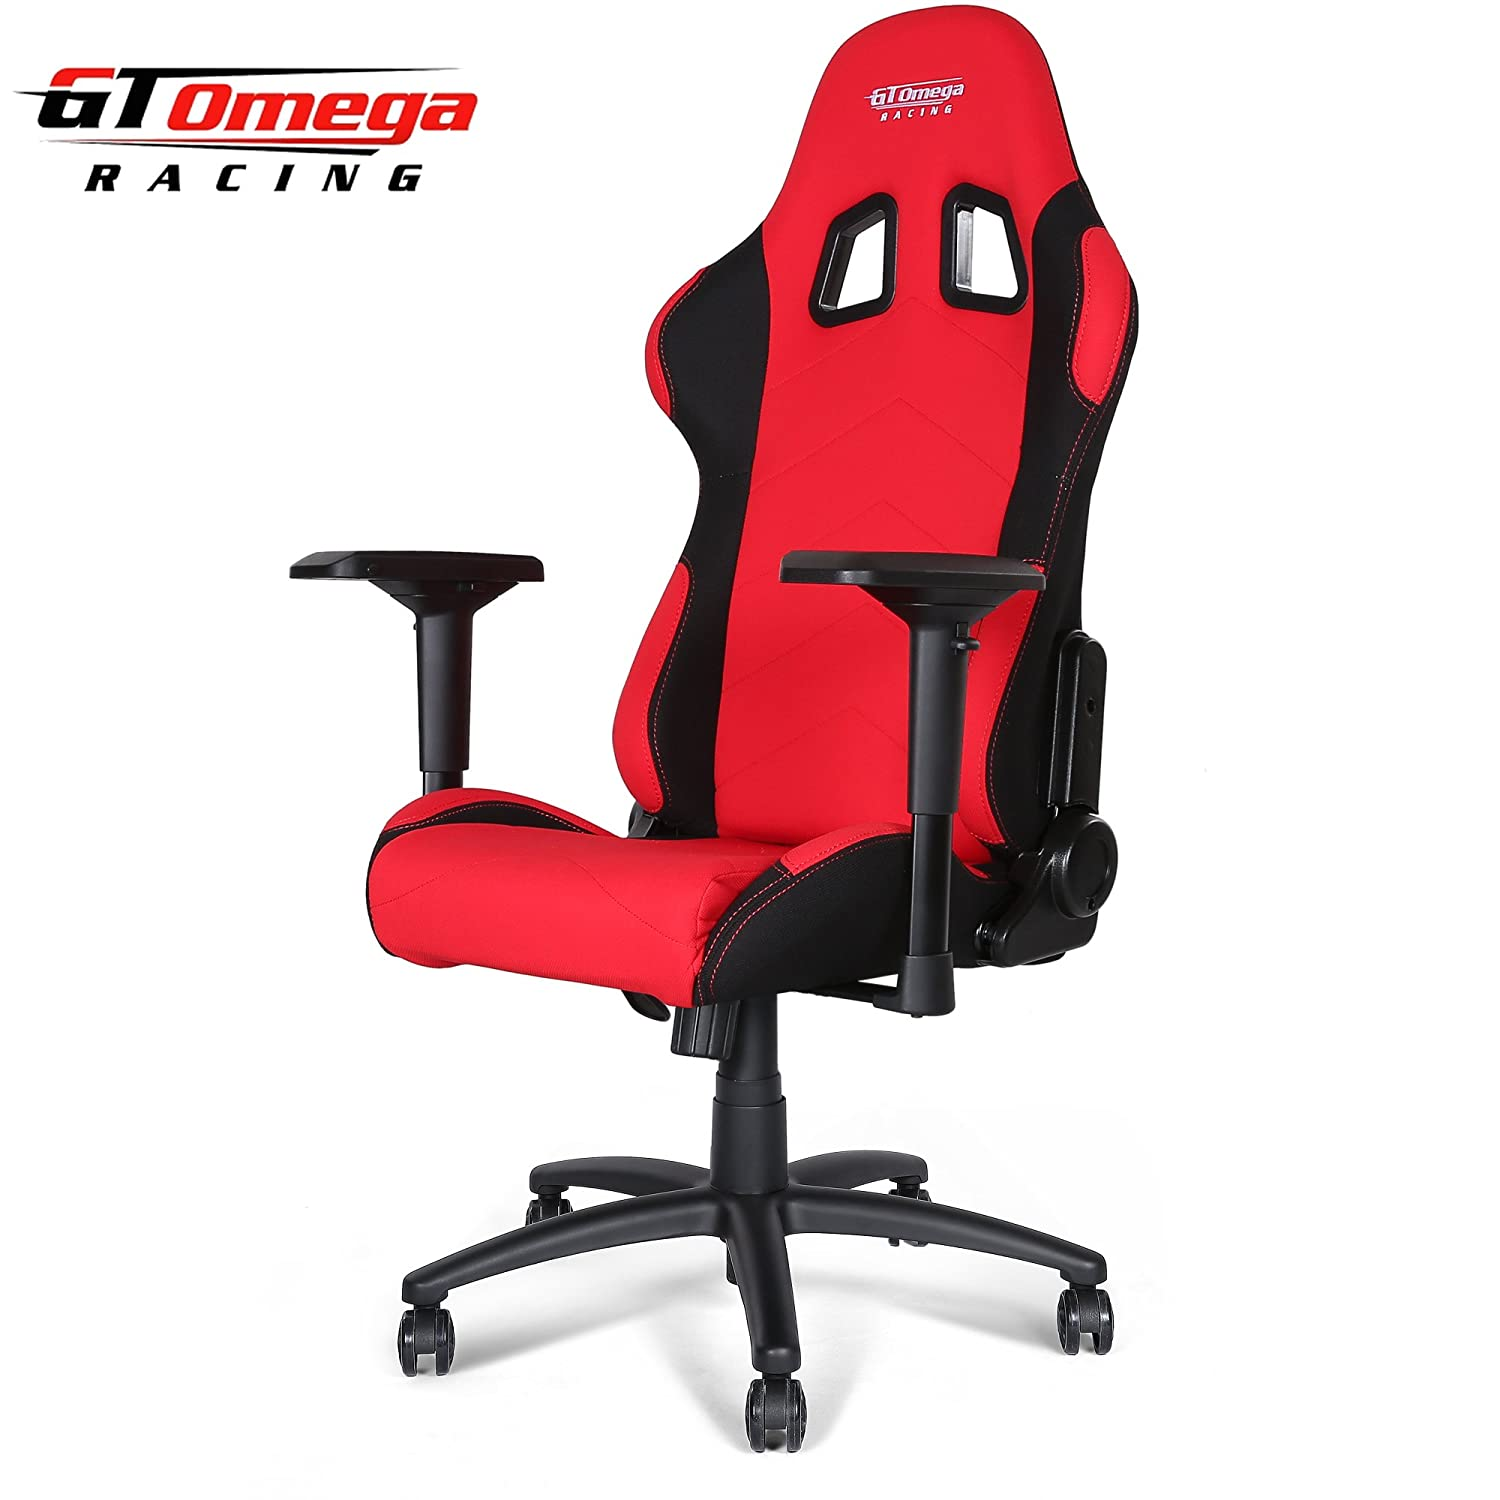 GT OMEGA PRO RACING OFFICE CHAIR RED AND BLACK FABRIC Amazon